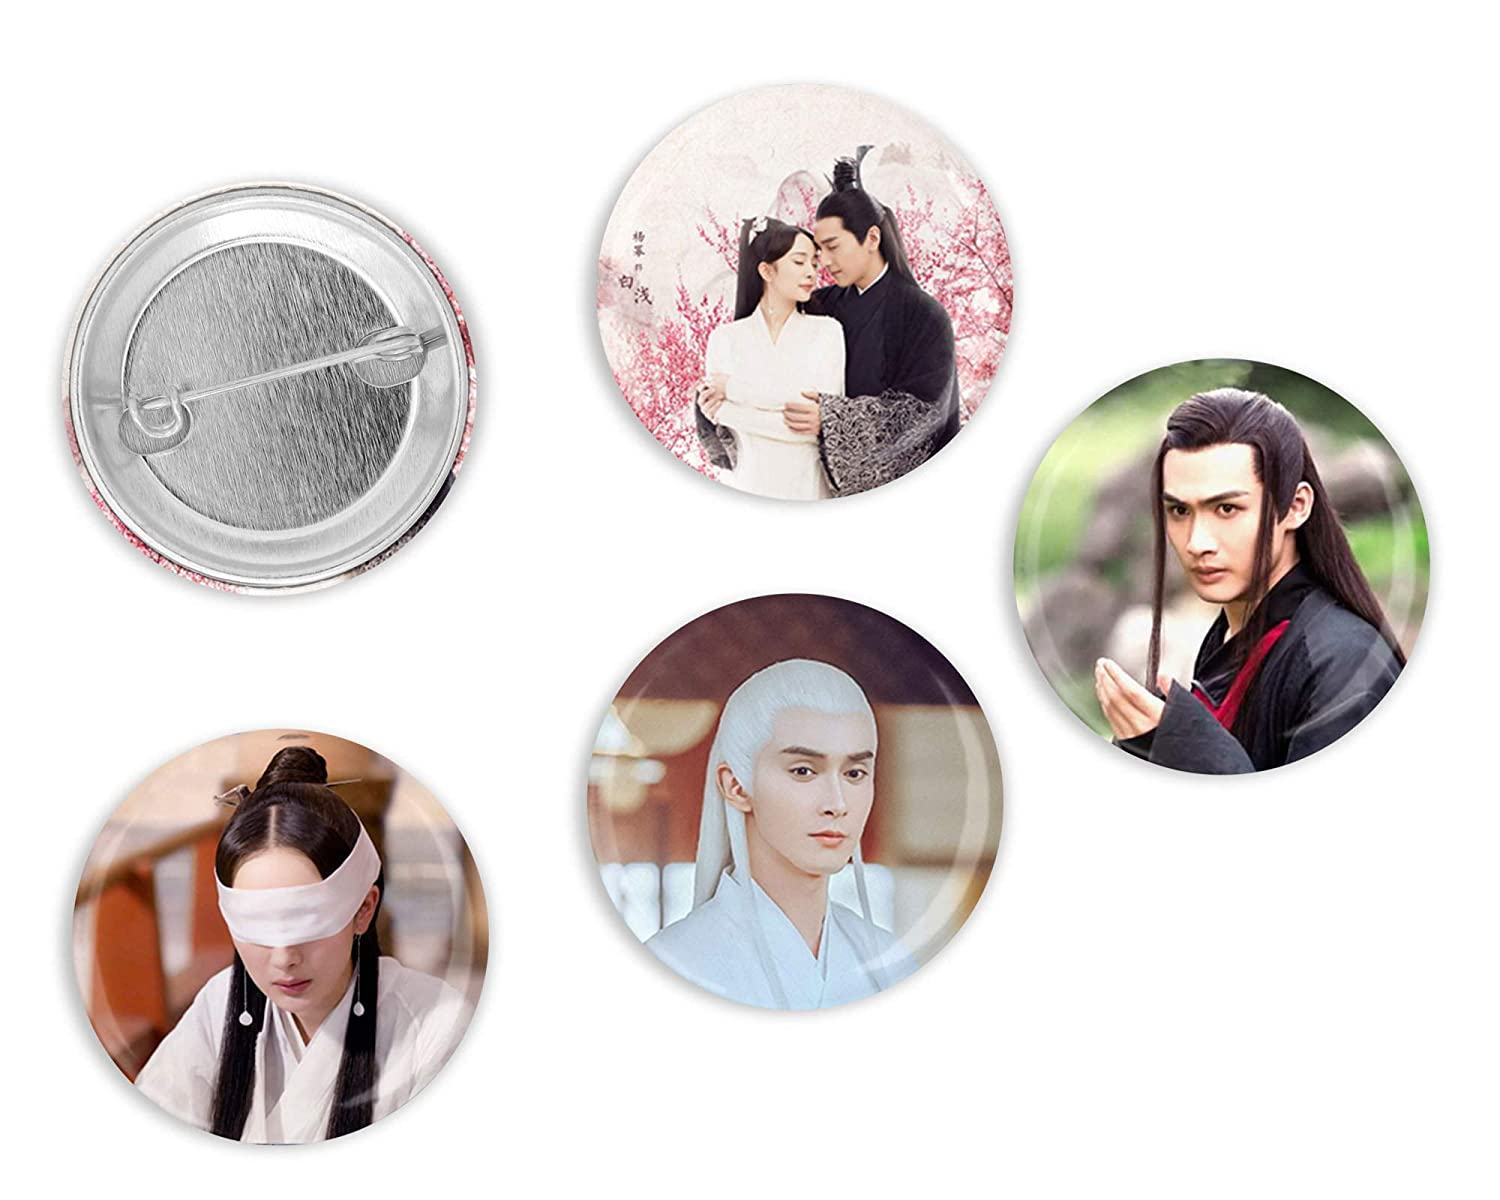 Three Lives Three Worlds Set of 4 Brooch Pins Ten Miles of Peach Blossoms Gift Ideas for C-drama Fans Pinback Buttons 1.25 inch Round